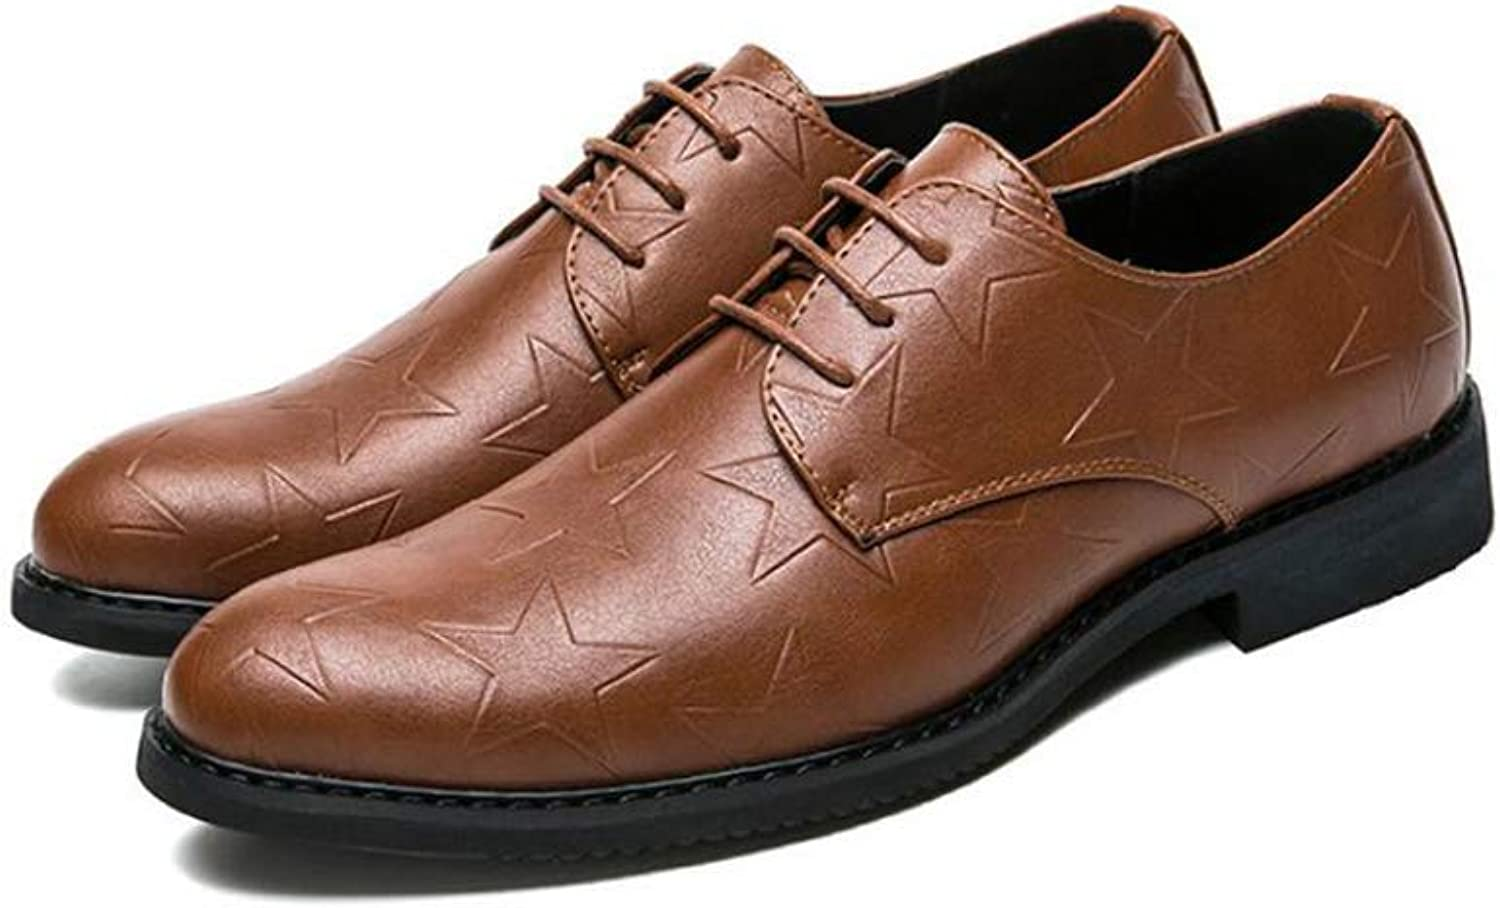 FuweiEncore Men's Leather shoes, Formal Office shoes, British Style Pointed Toe shoes, Youth Wild Business shoes, Casual Dress shoes, (color  Brown, Size  41) (color   Brown, Size   39)